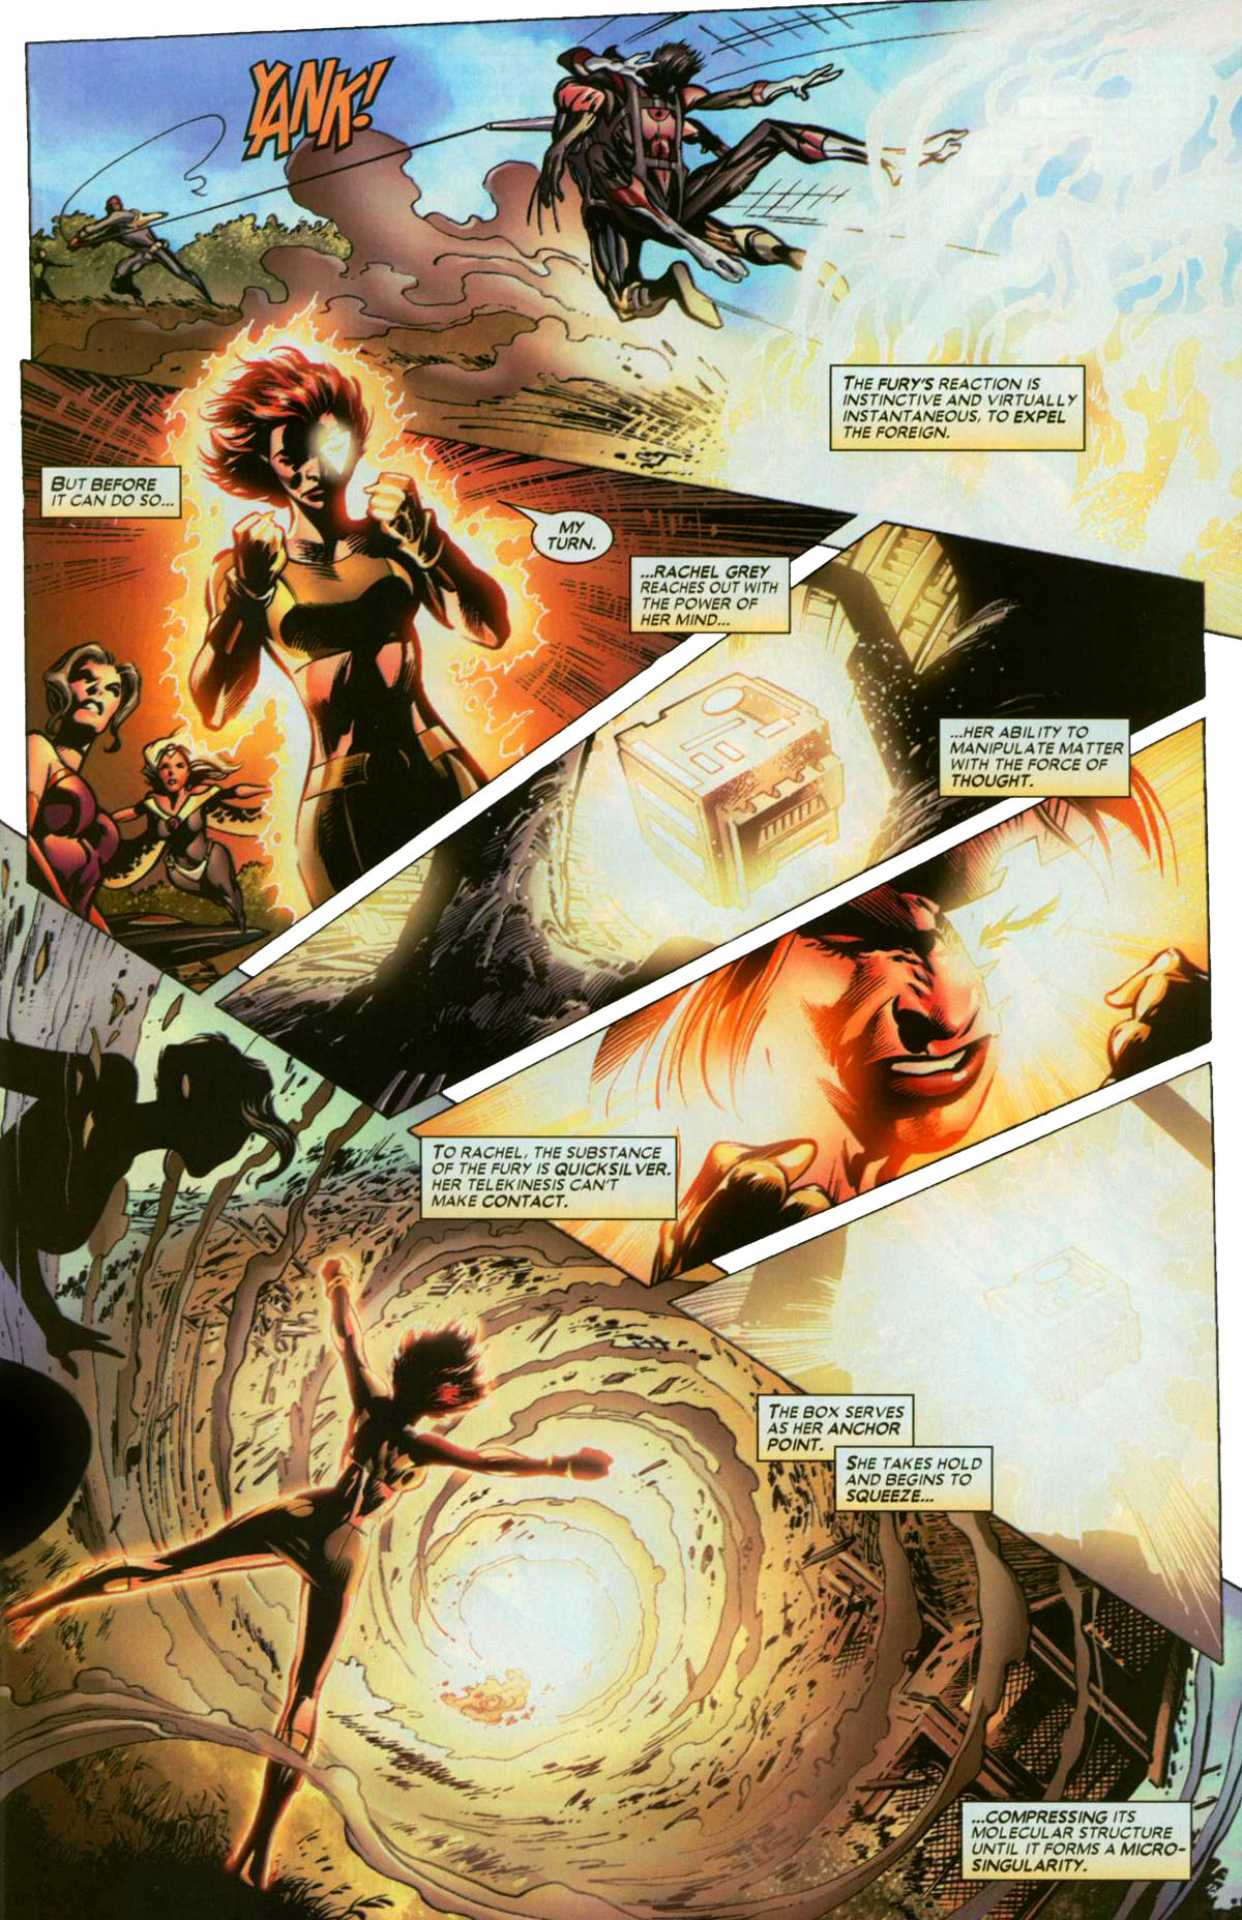 To contain the Fury and stop it from regenerating she crushes the molecules around it in order to create a micro blackhole. - Uncanny X-Men v1 #447